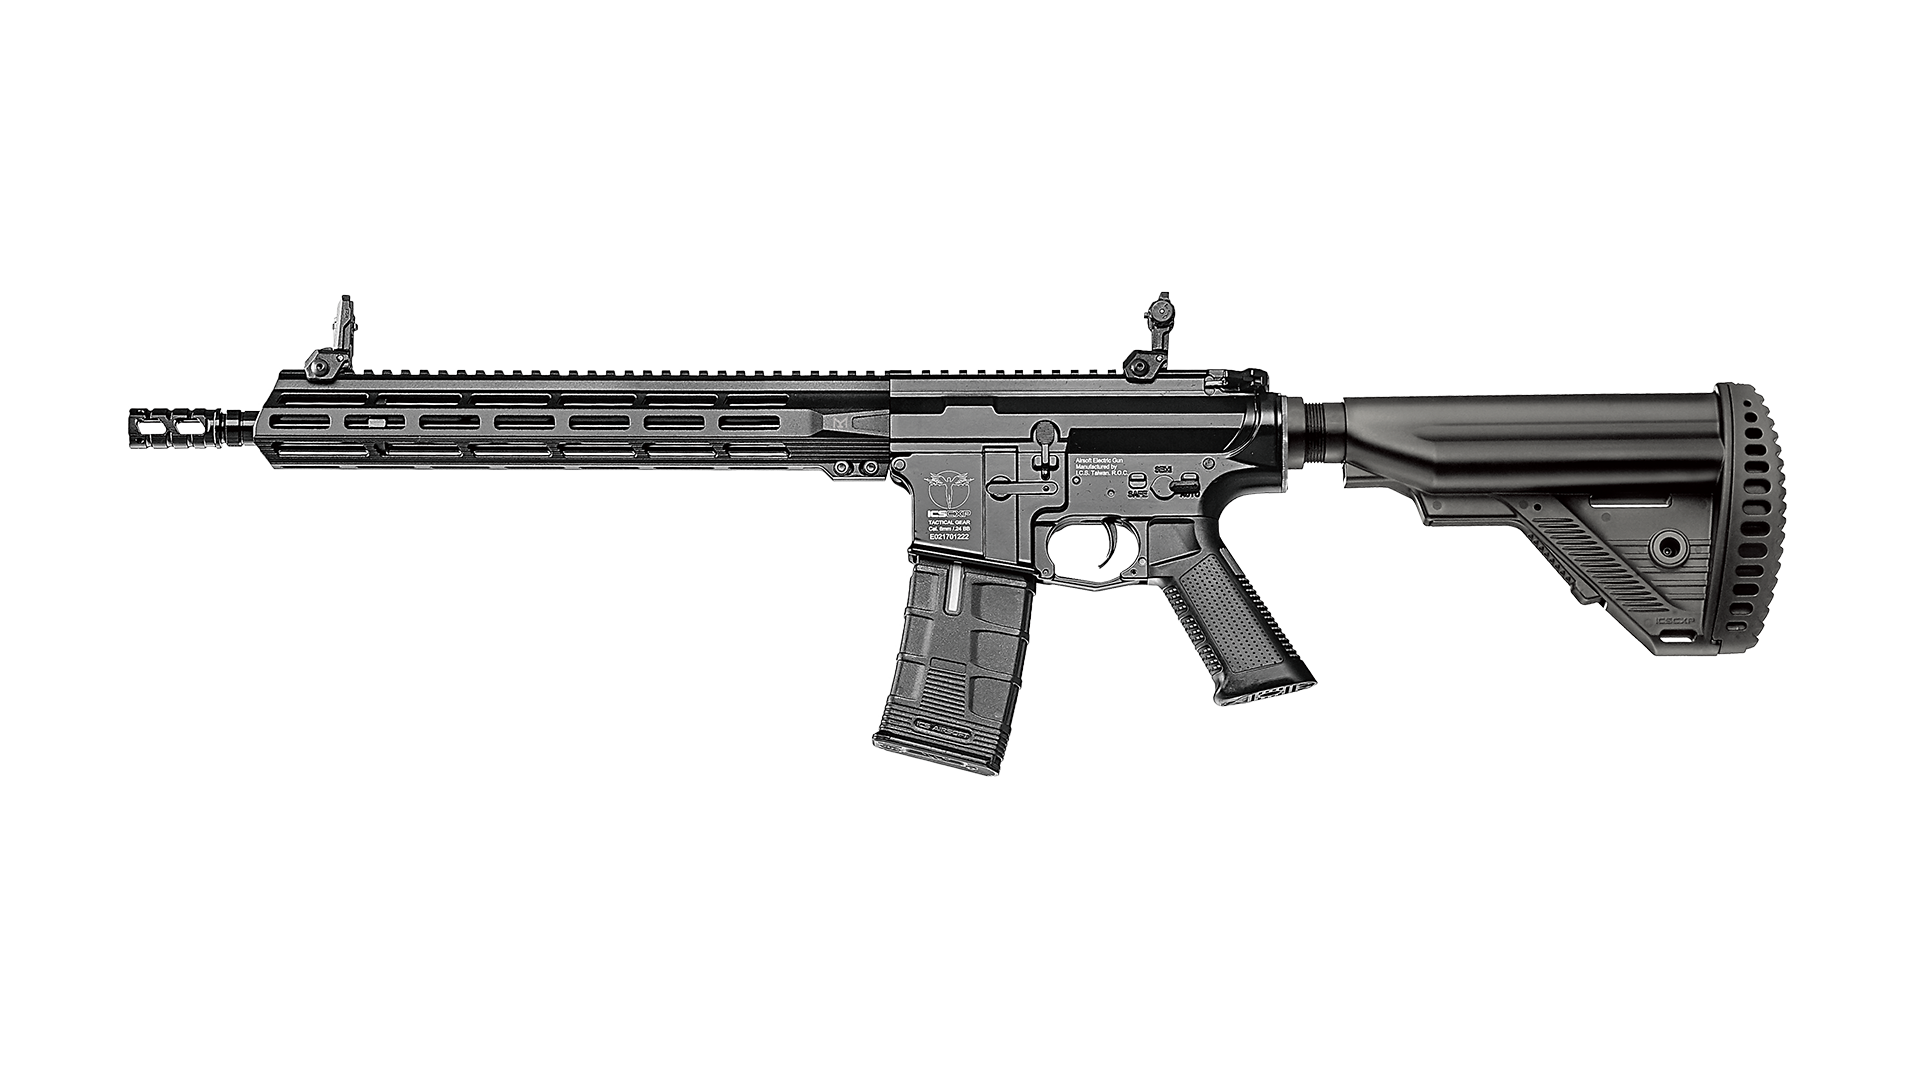 CXP-MMR Carbine S1 Stock